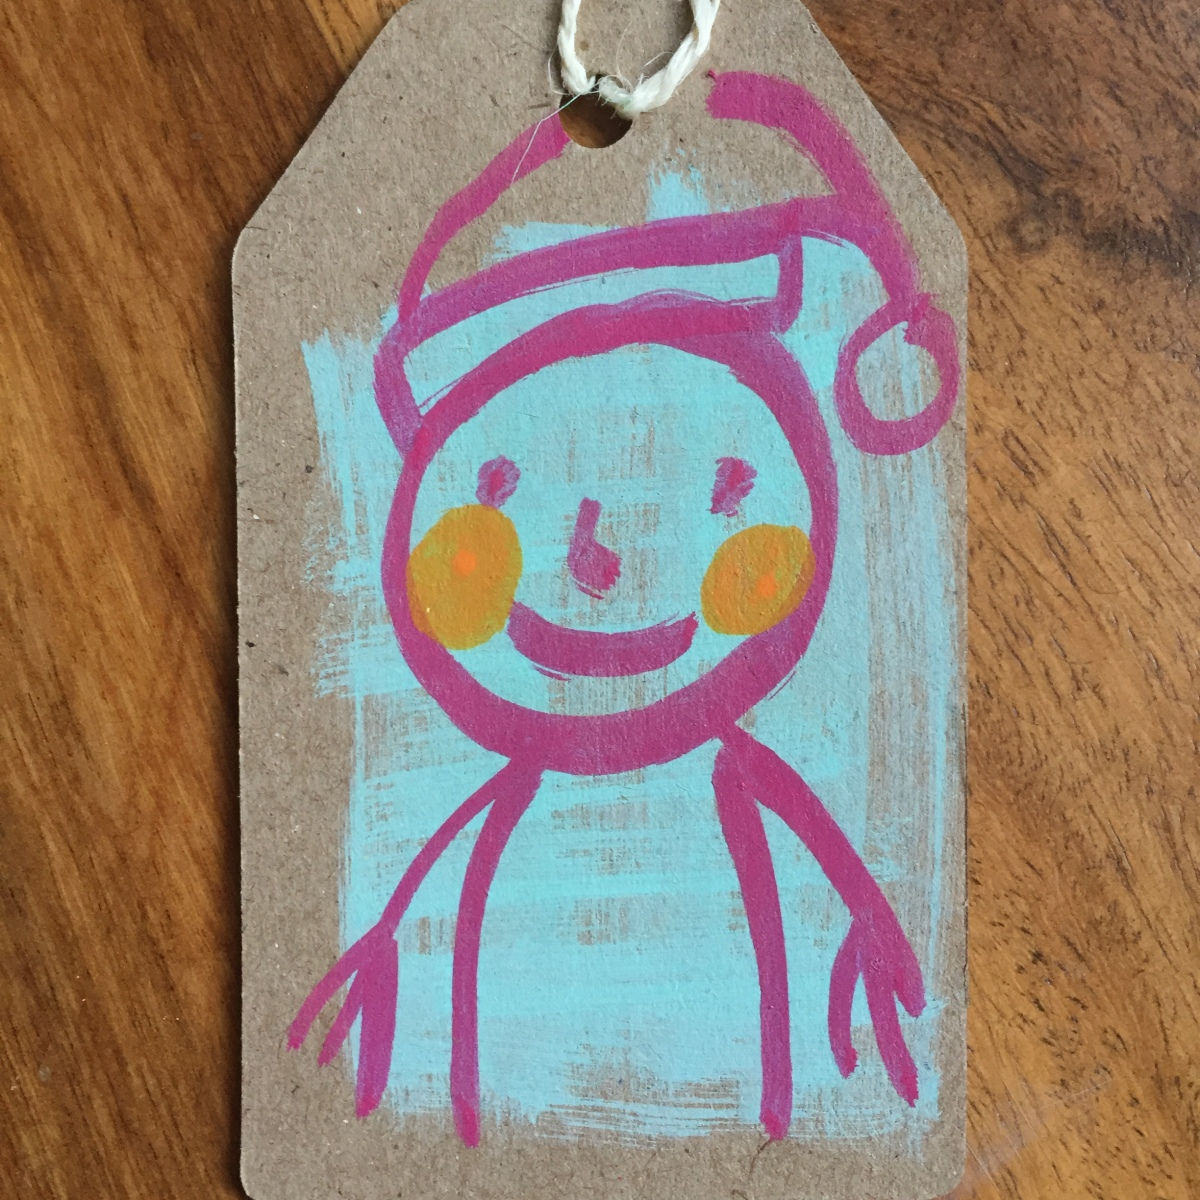 Making things: gifttags